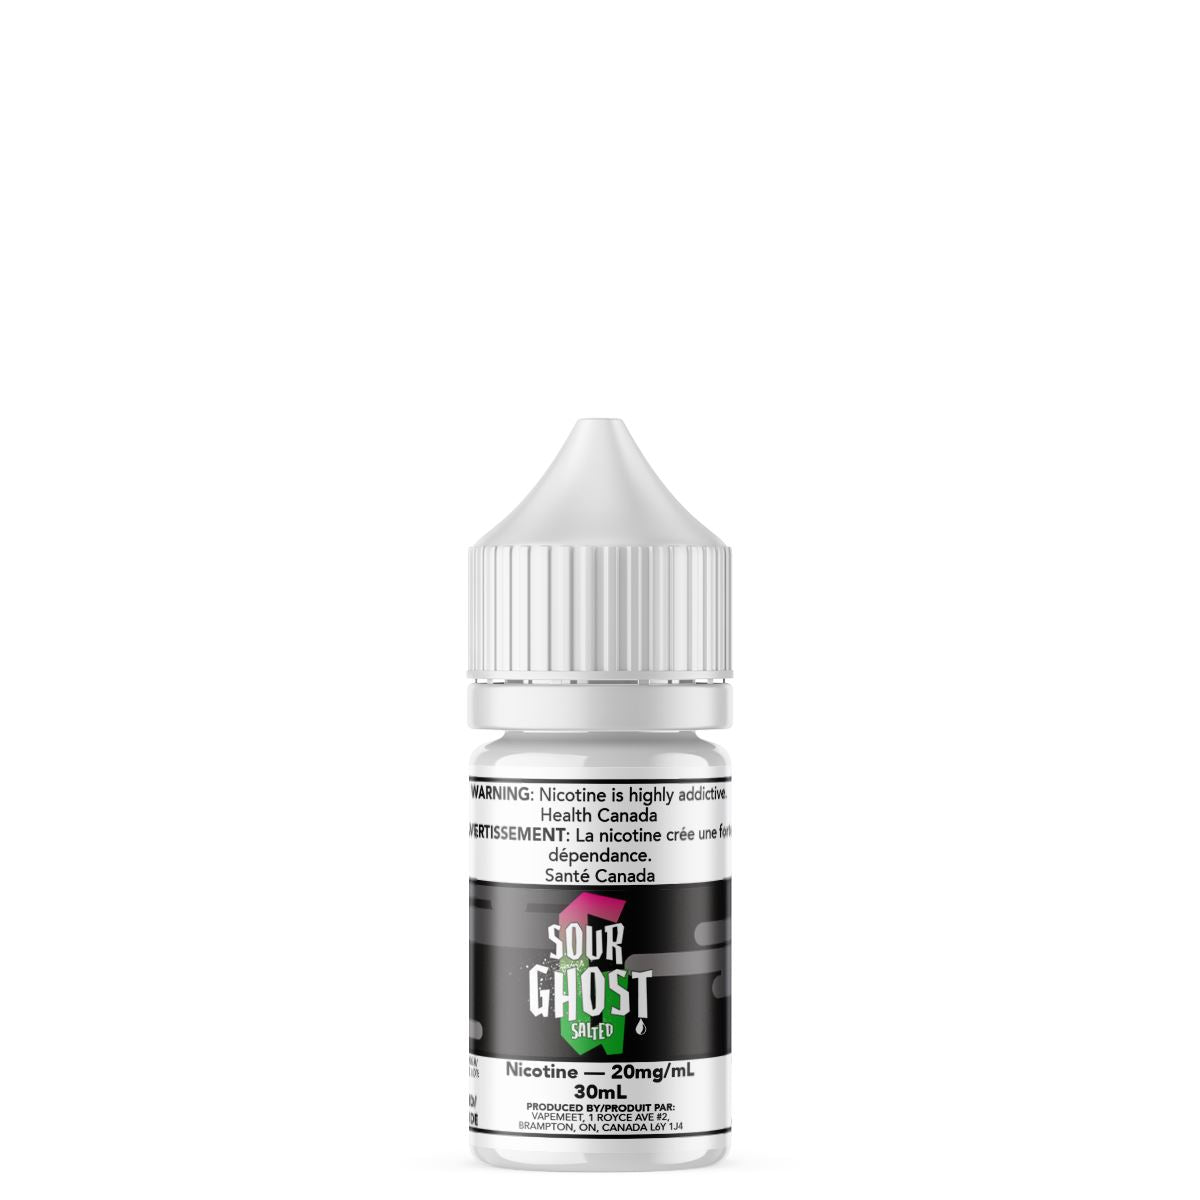 Ghosted Salted - Sour Ghost E-Liquid Ghosted Salted 30mL 20 mg/mL